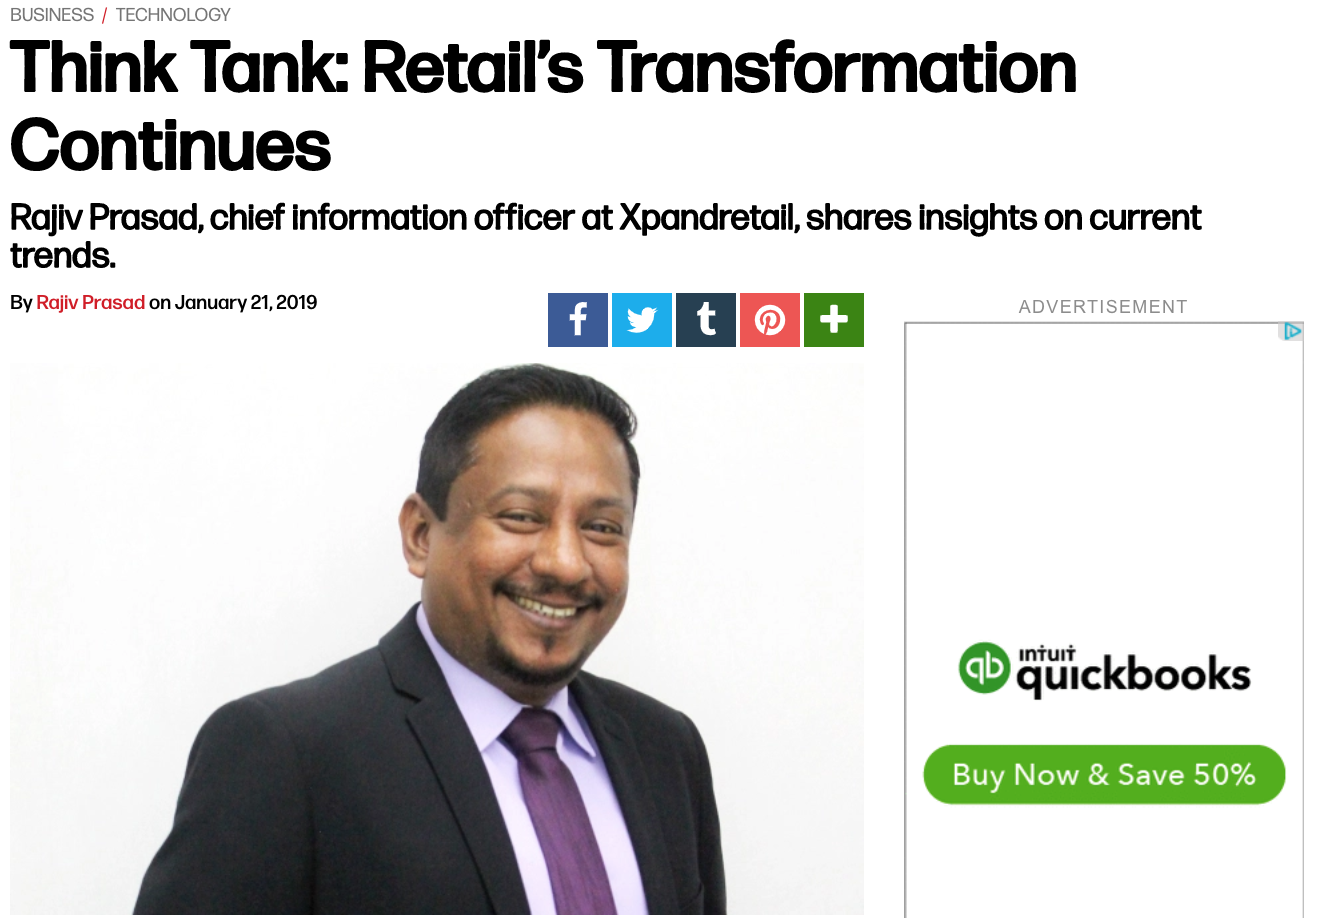 retail, rajiv prasad, analytics, retail analytics